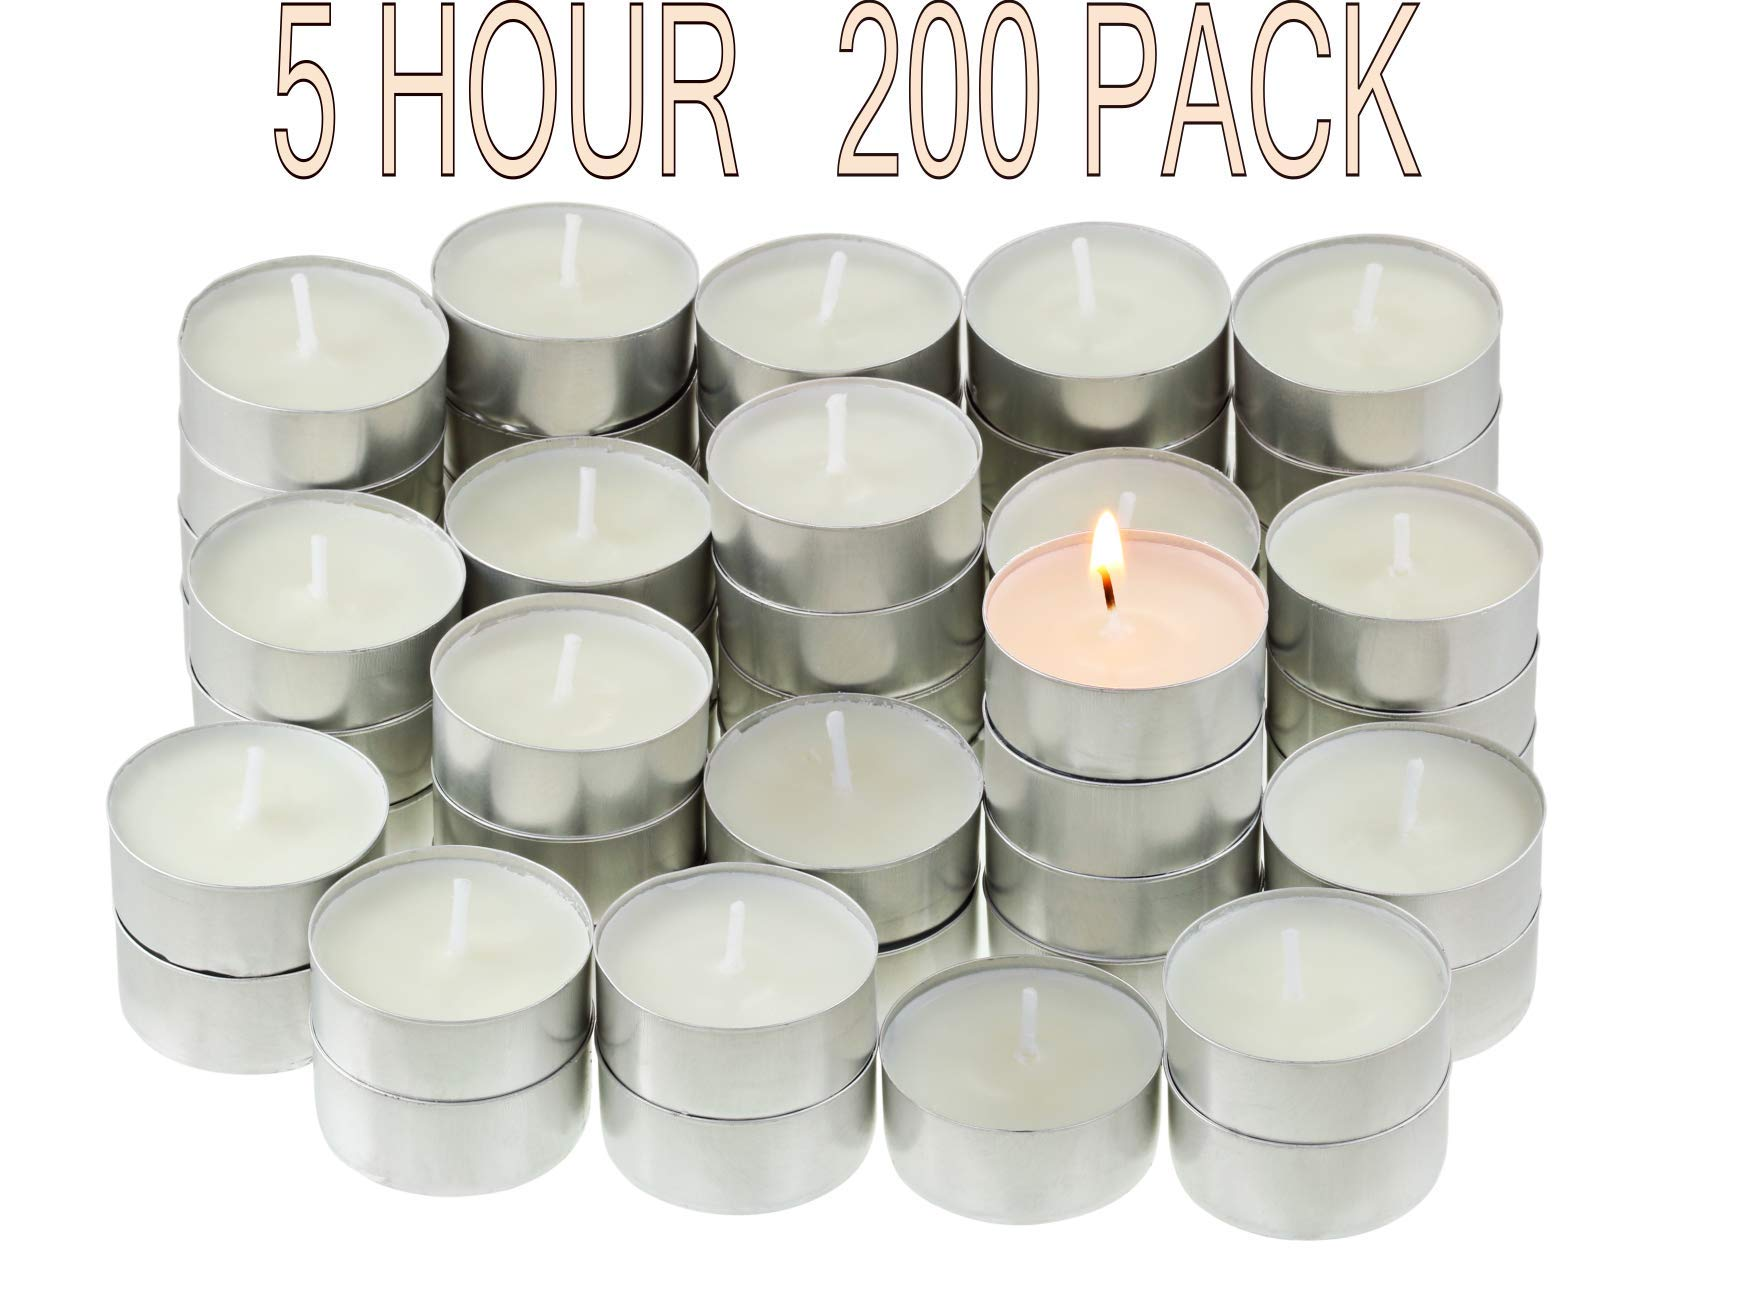 CandleNScent | 5 Hour Tealight Candles | 200 Tea Lights Candles Bulk | White | Unscented Candles | Long Burning Tea Lights | Poured Wax | Made in USA by CandleNScent (Image #1)